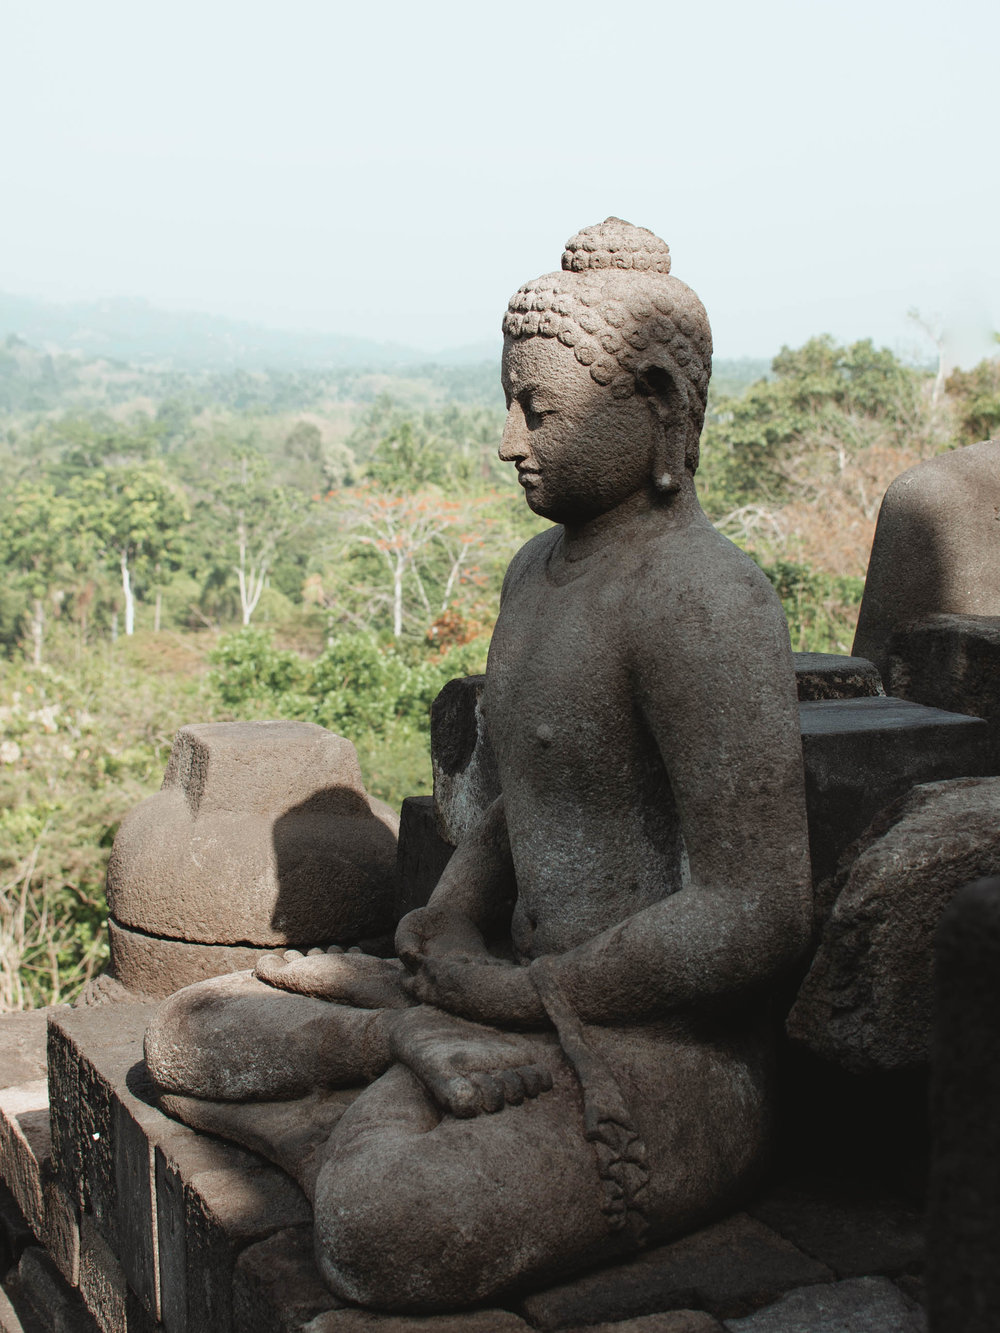 A carving of Buddha at Borobudur temple in Yogyakarta, Indonesia